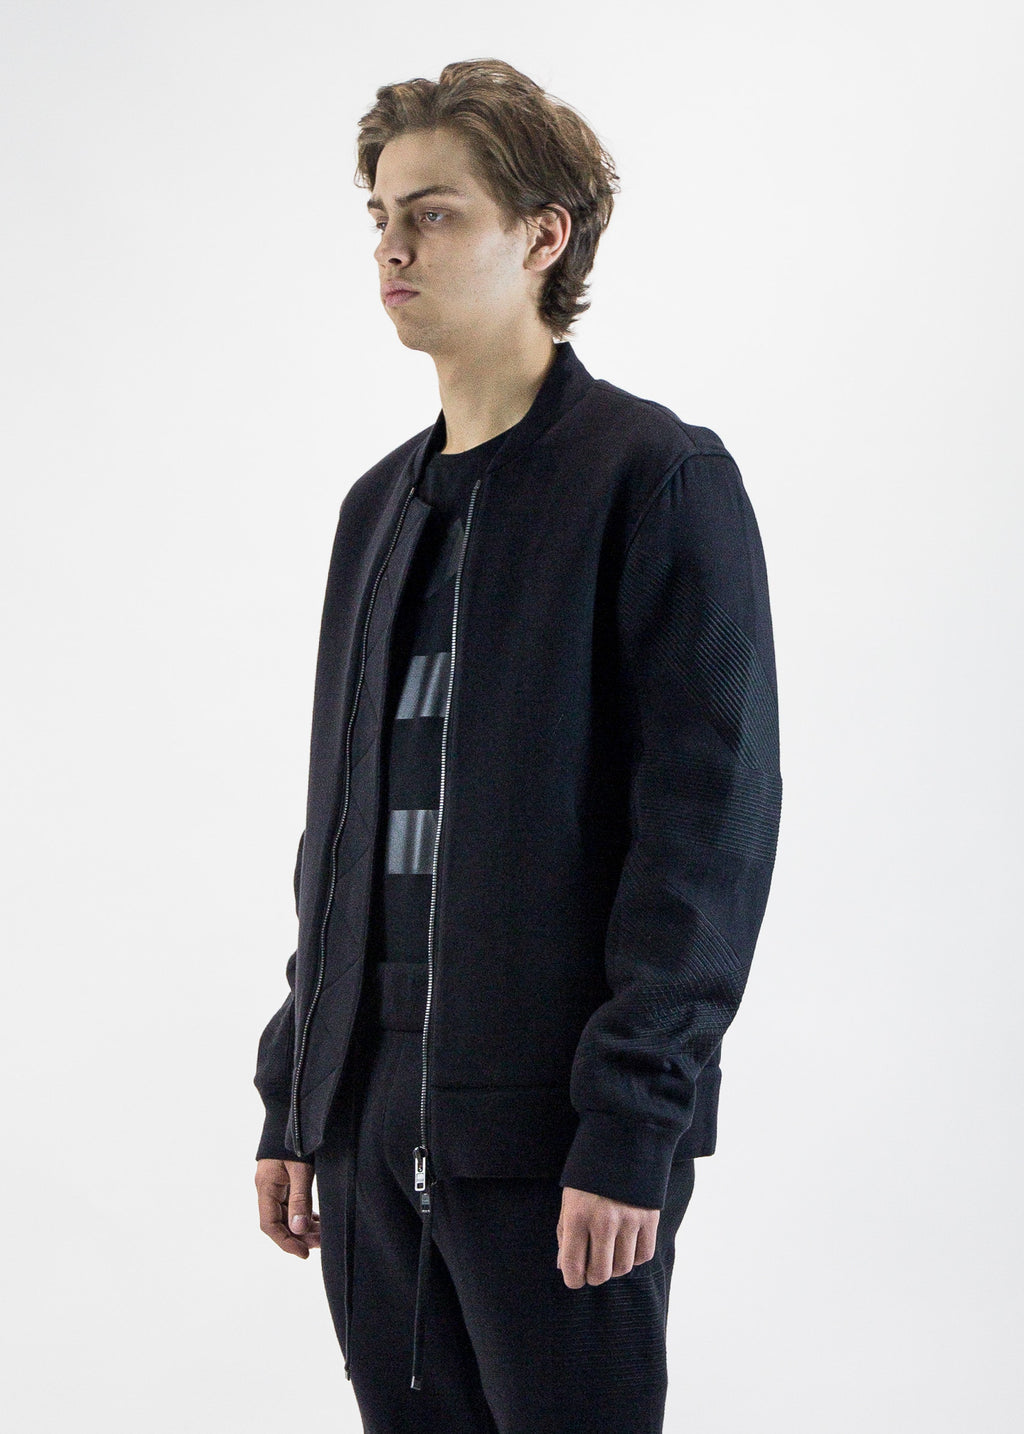 Helmut Lang Men's embroidered bomber